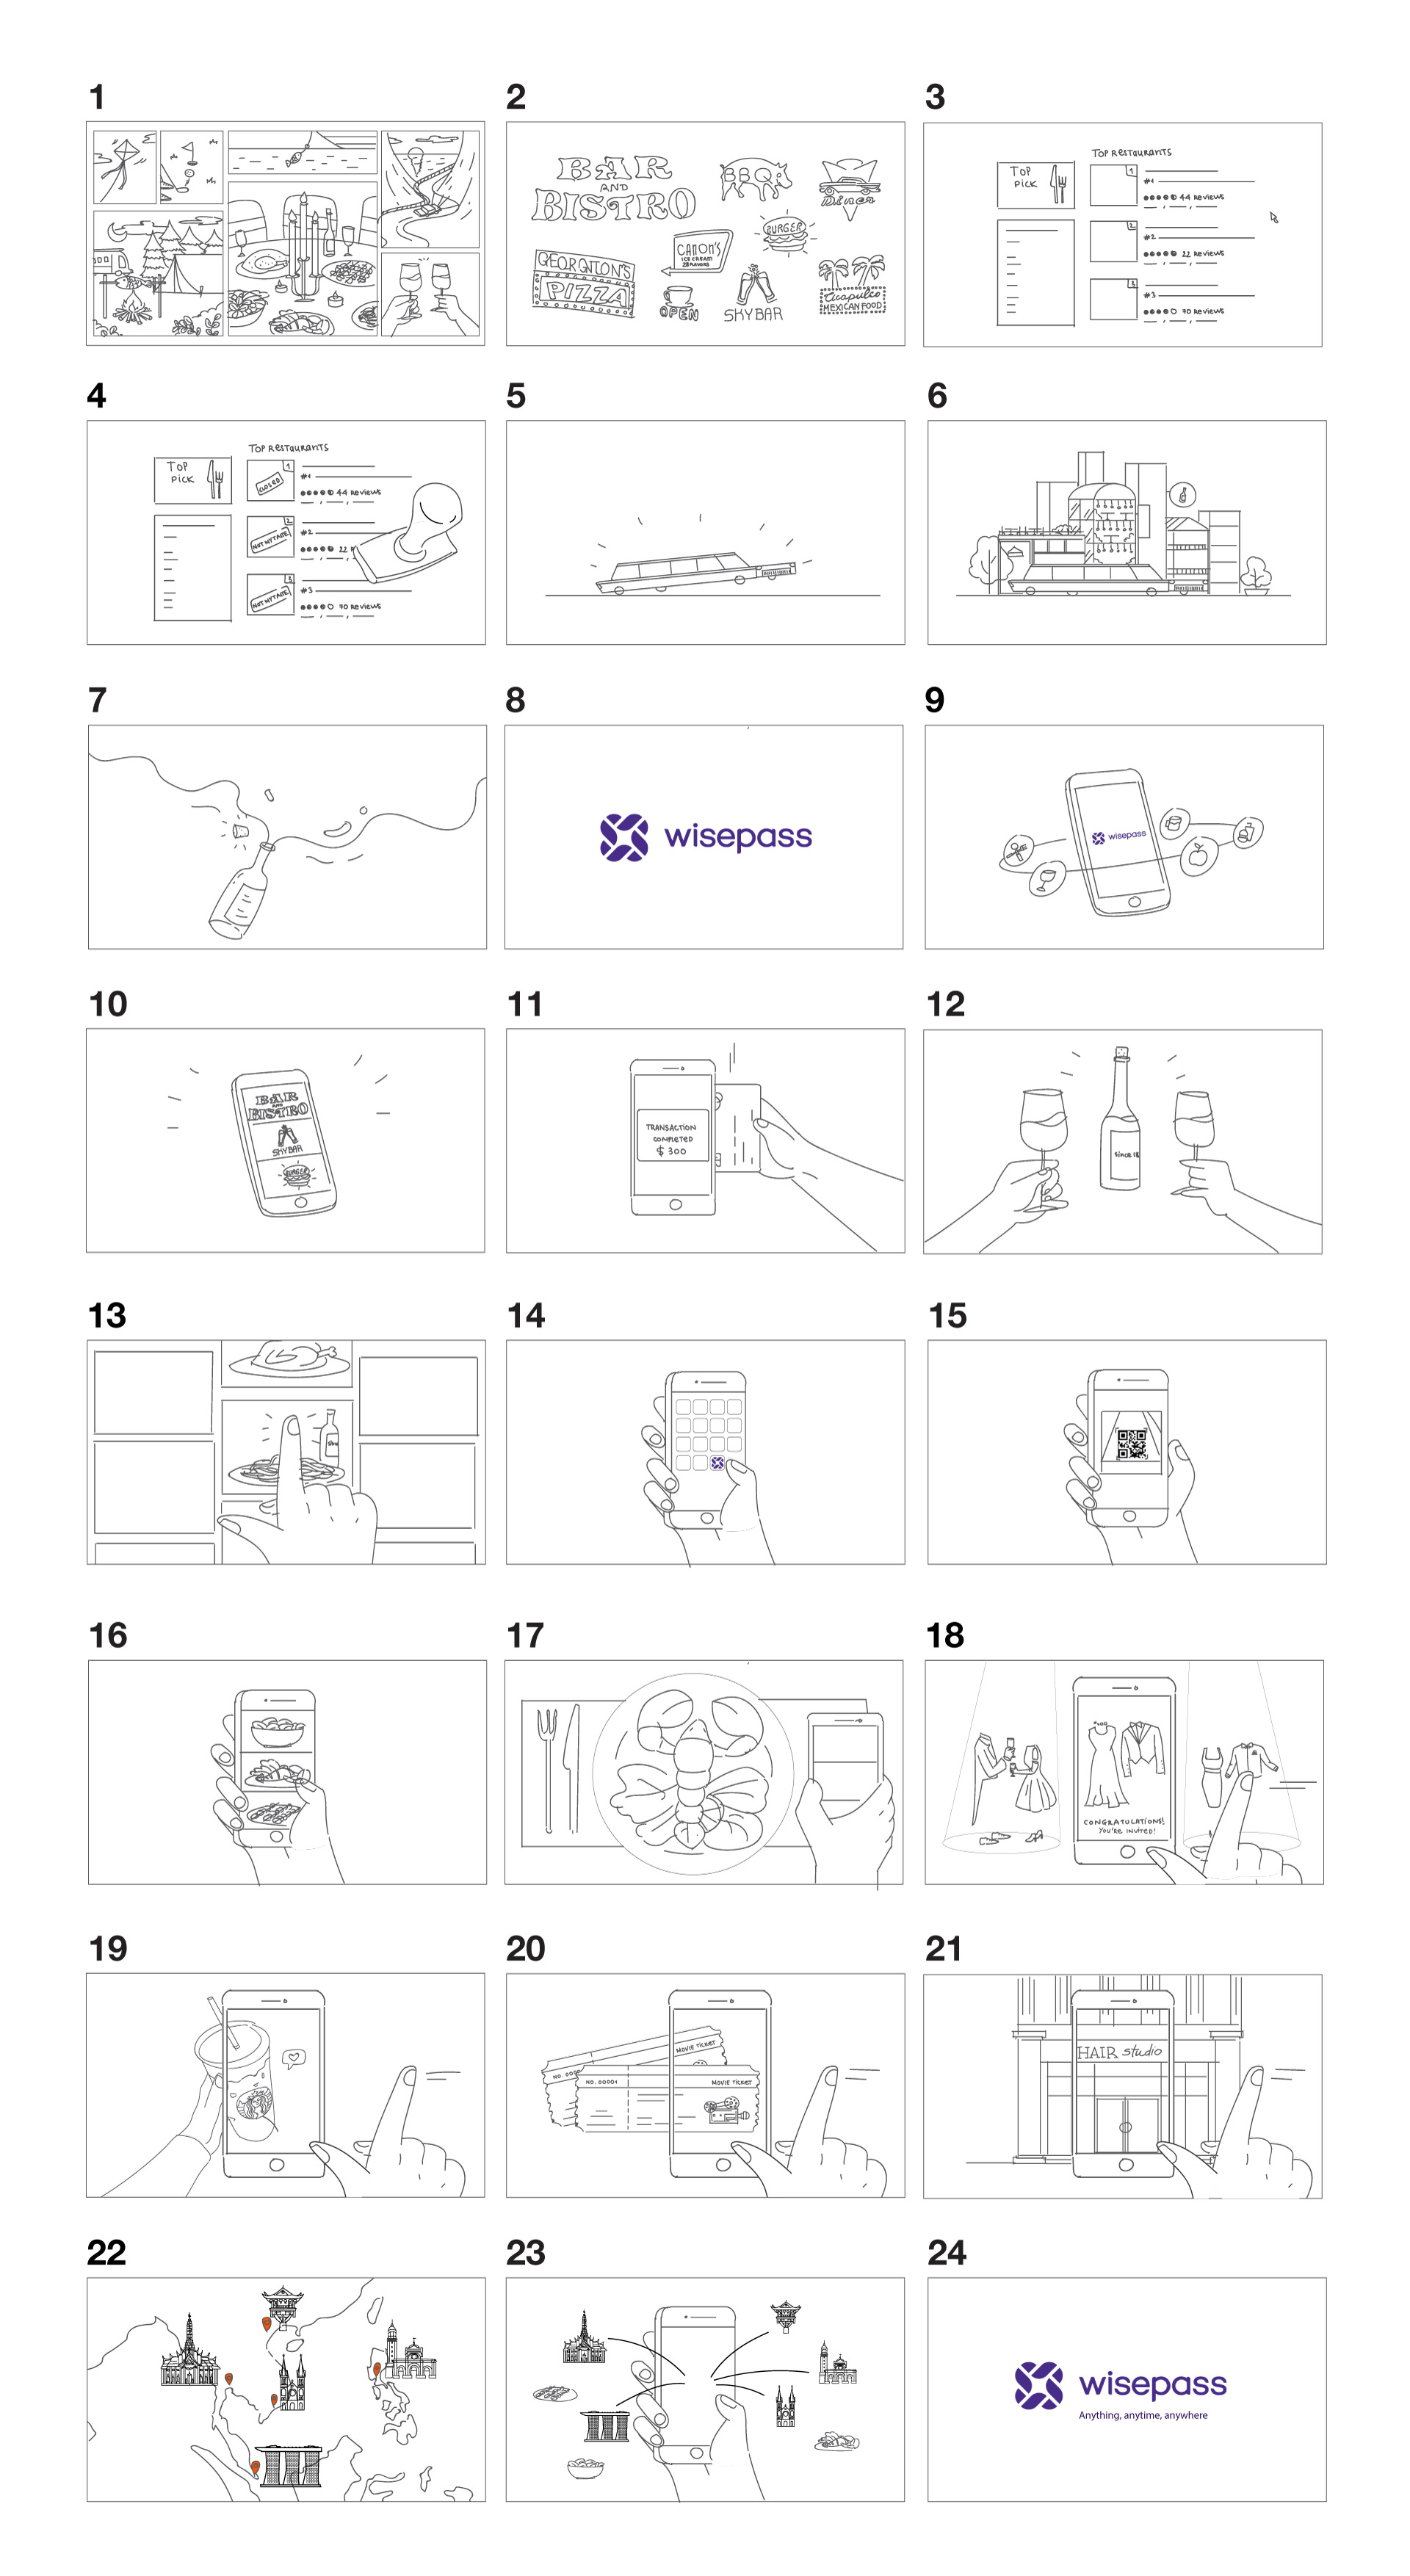 Wisepass_Storyboard_Sketch_180607_Option2.jpg